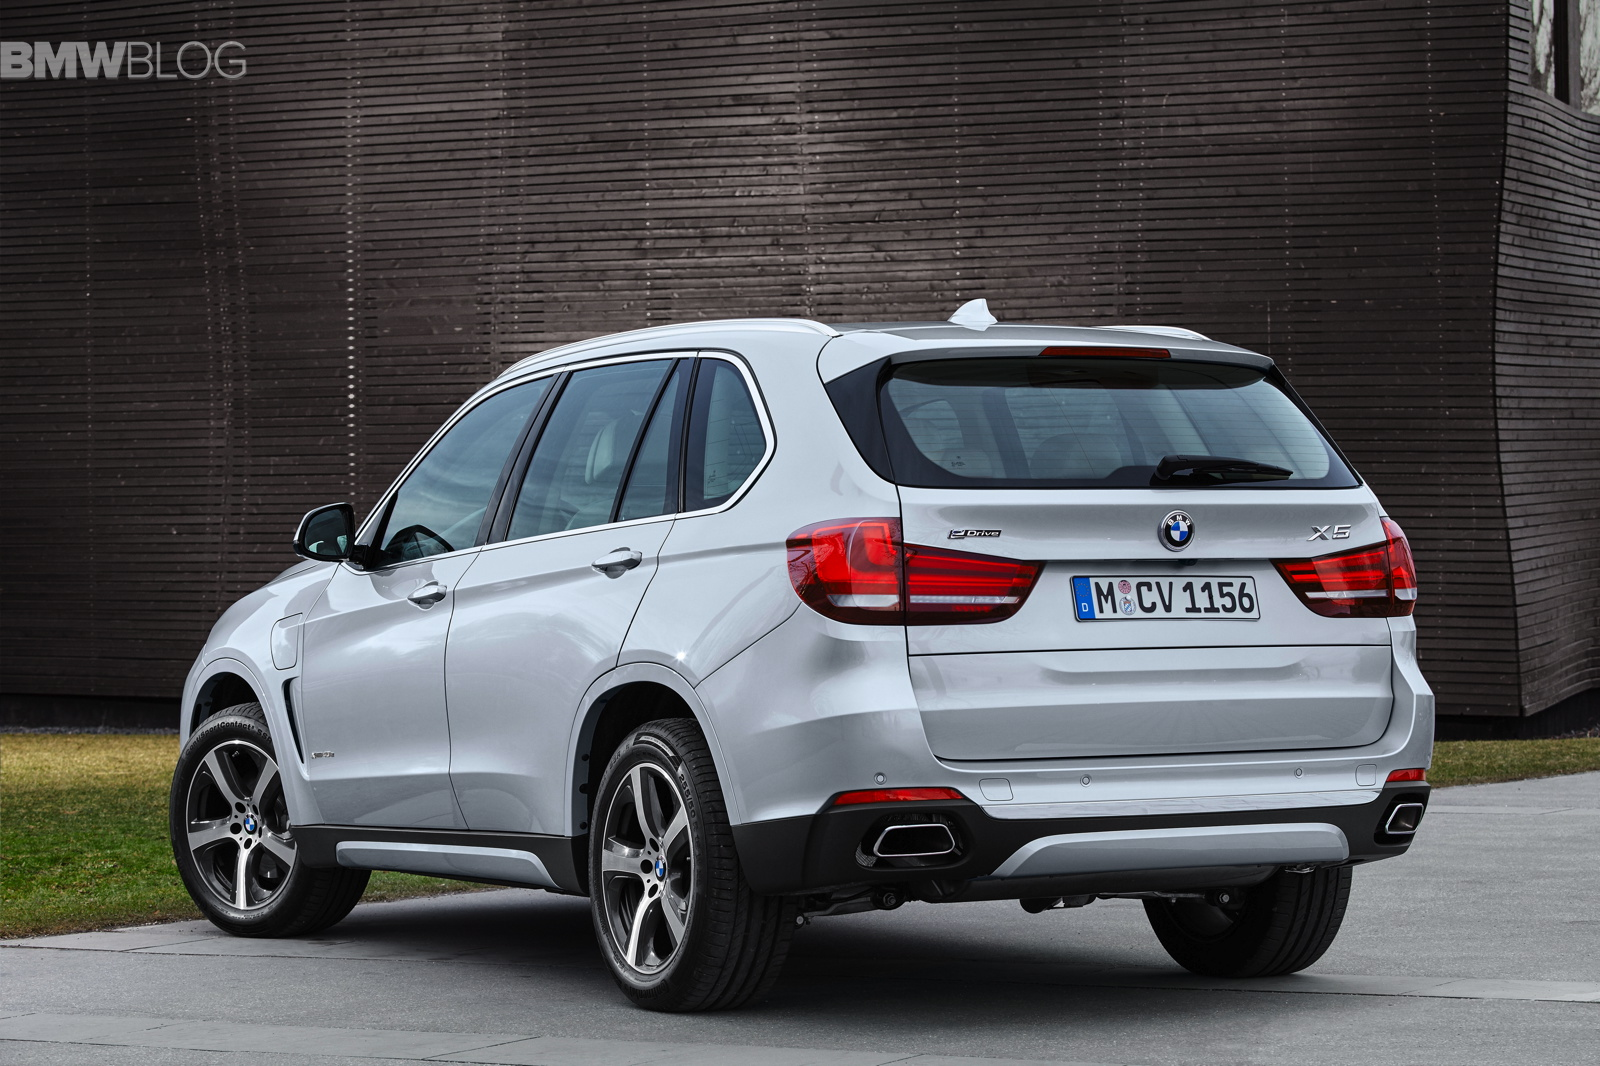 Bmw X5 Xdrive40e Images 29